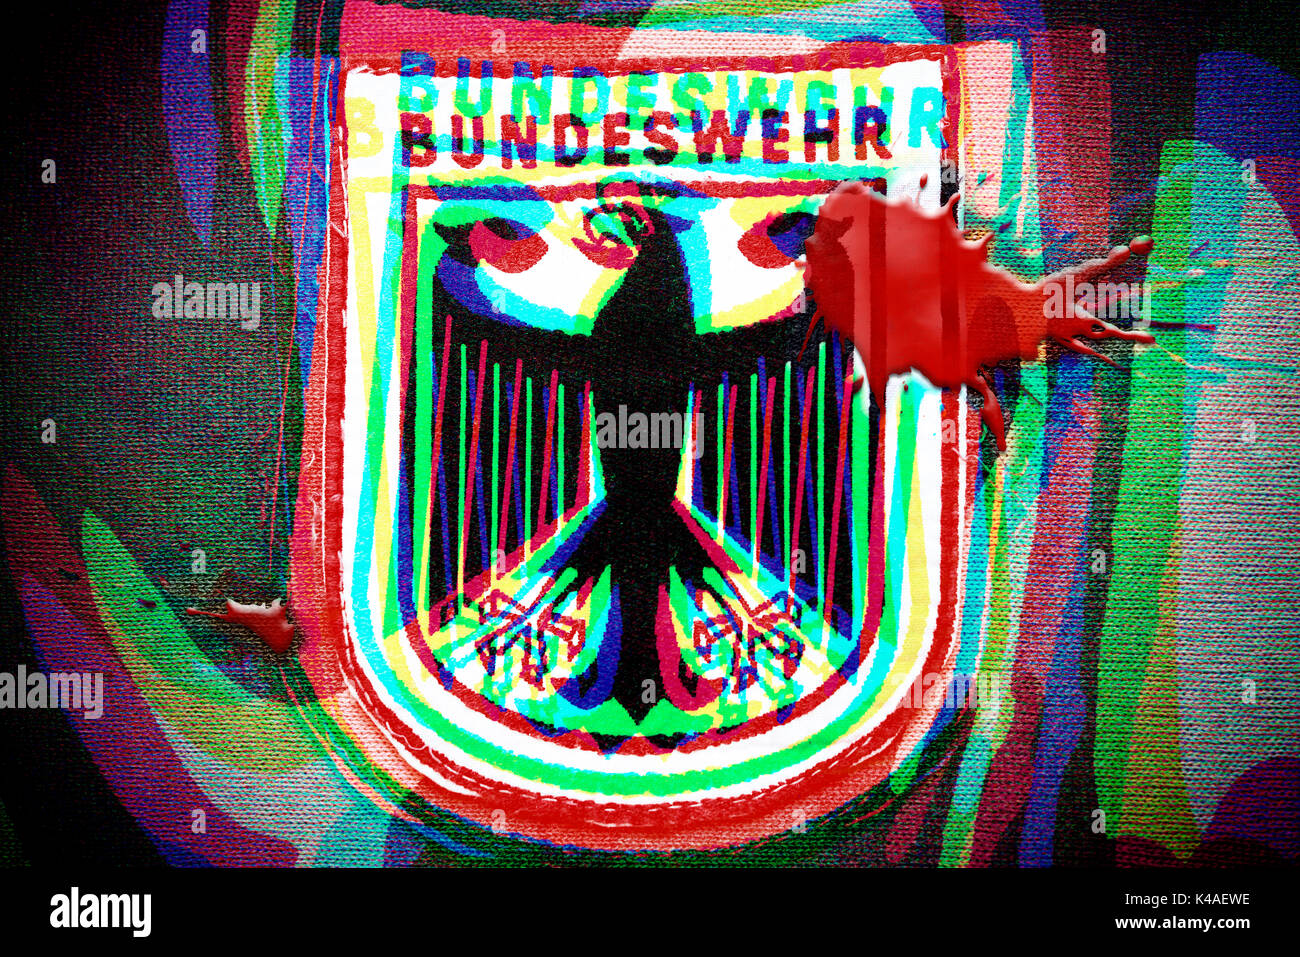 German Armed Forces Emblem With Blood Stain, Bundeswehr Scandal - Stock Image